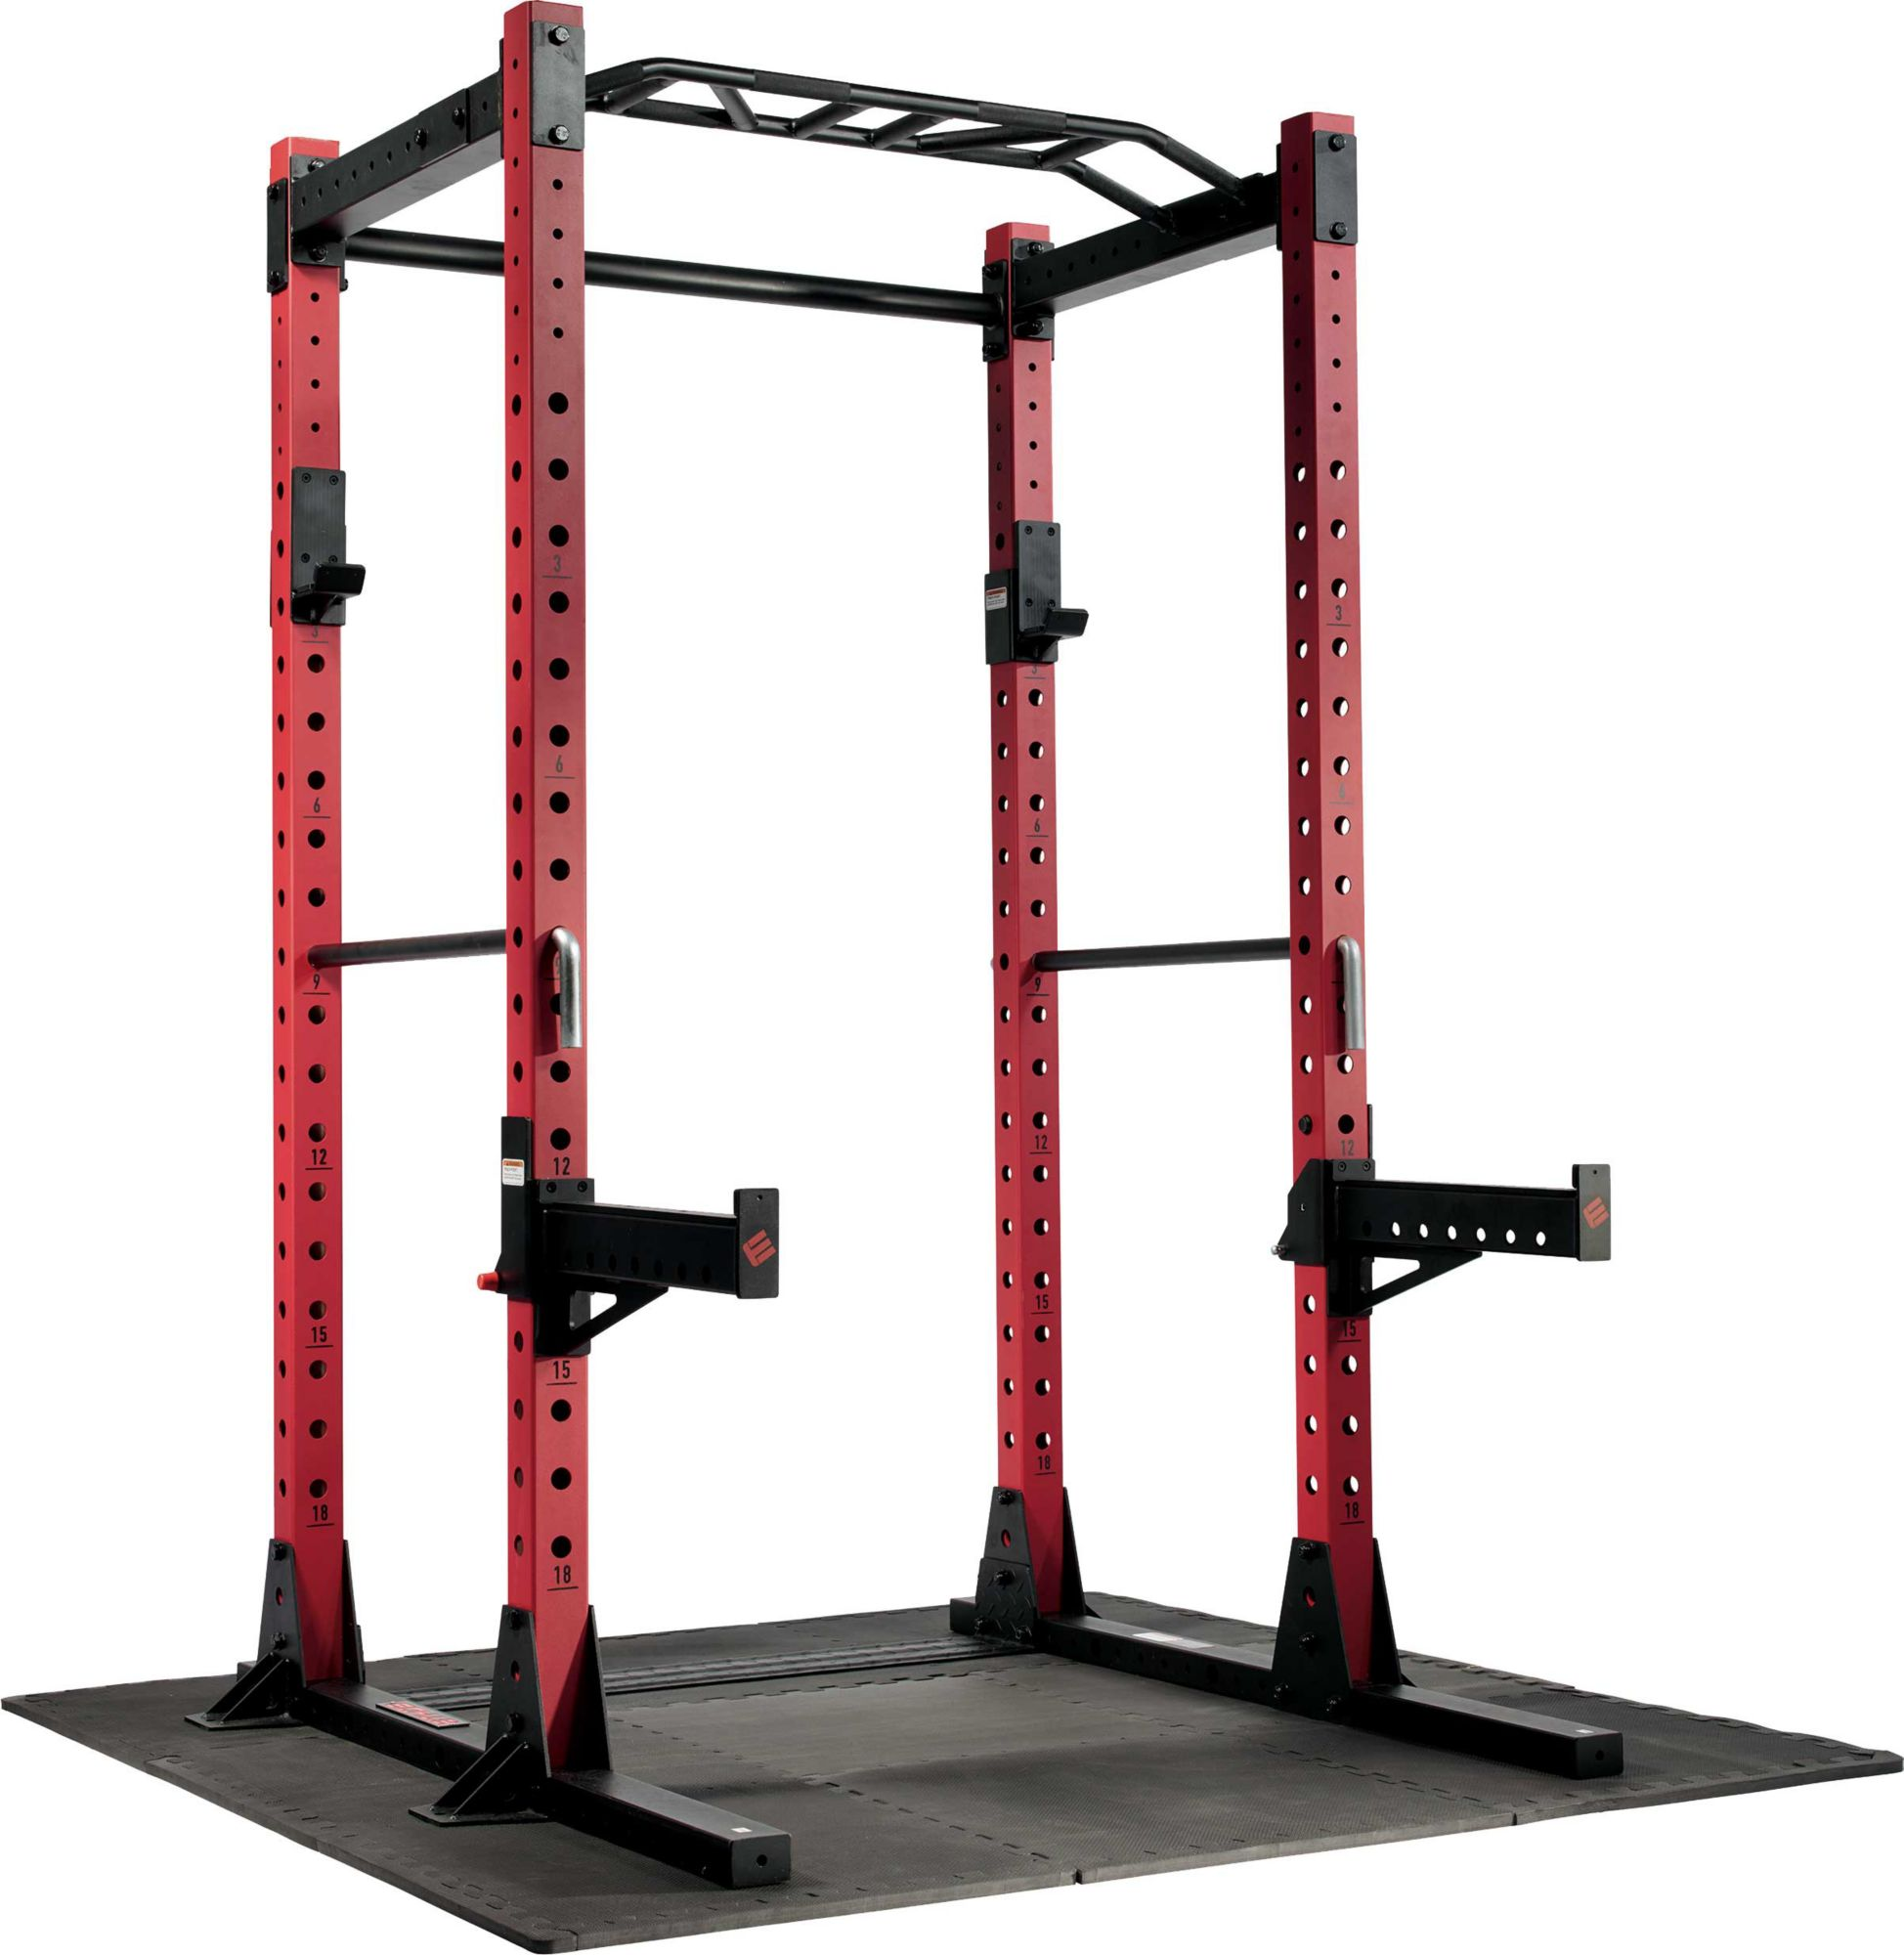 ETHOS Power Rack 10